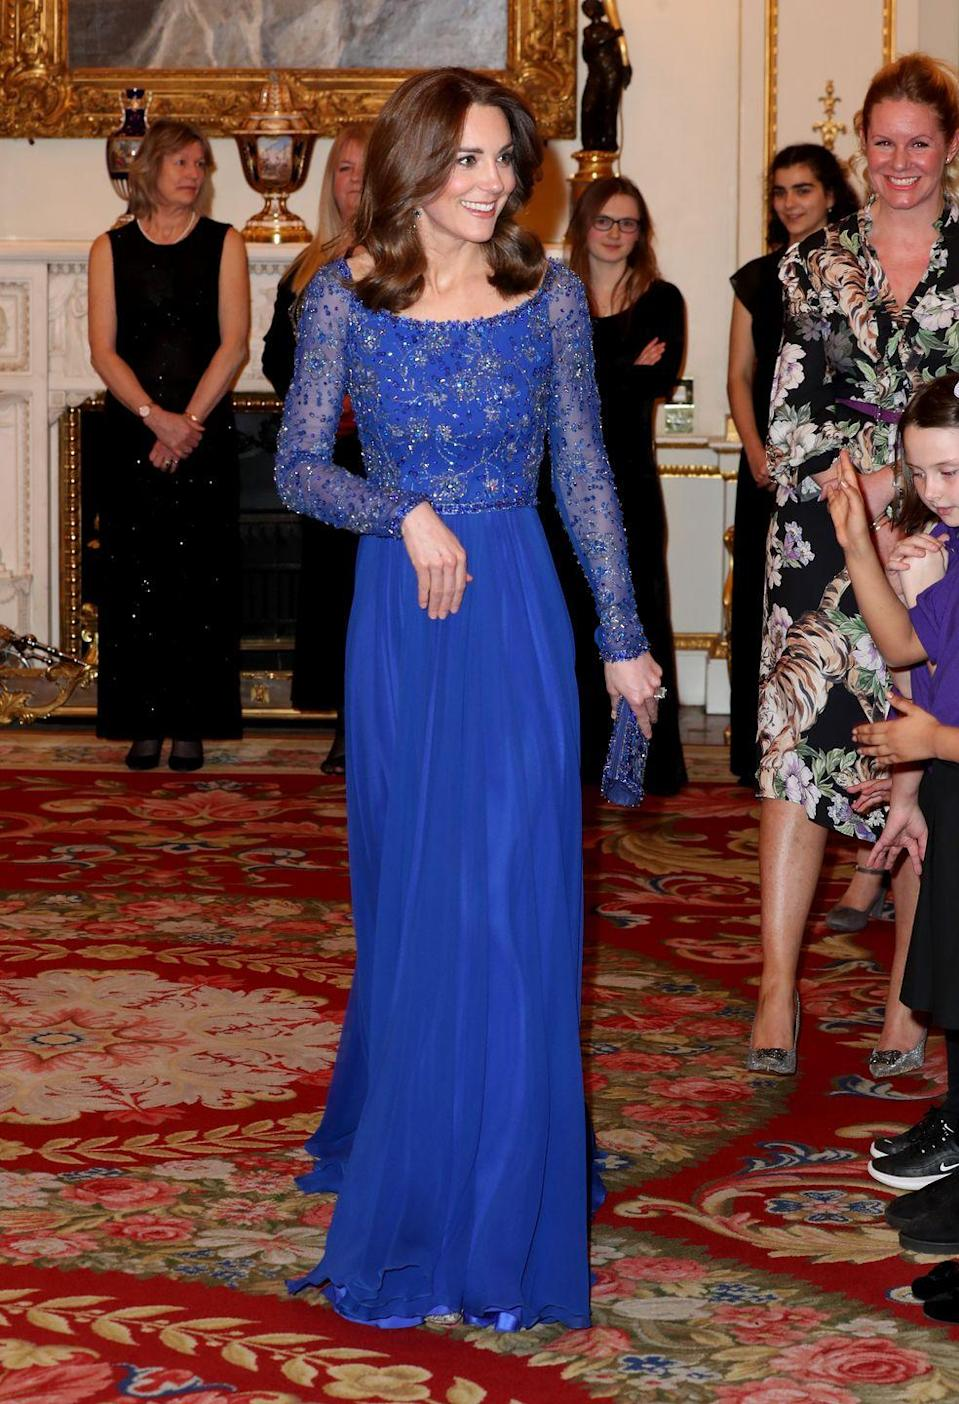 <p>The Duchess wore a sparkling, long-sleeved gown while hosting a gala dinner at Buckingham Palace. The event celebrated the 25th anniversary of Place2Be, an organization which supports childhood mental health. </p>